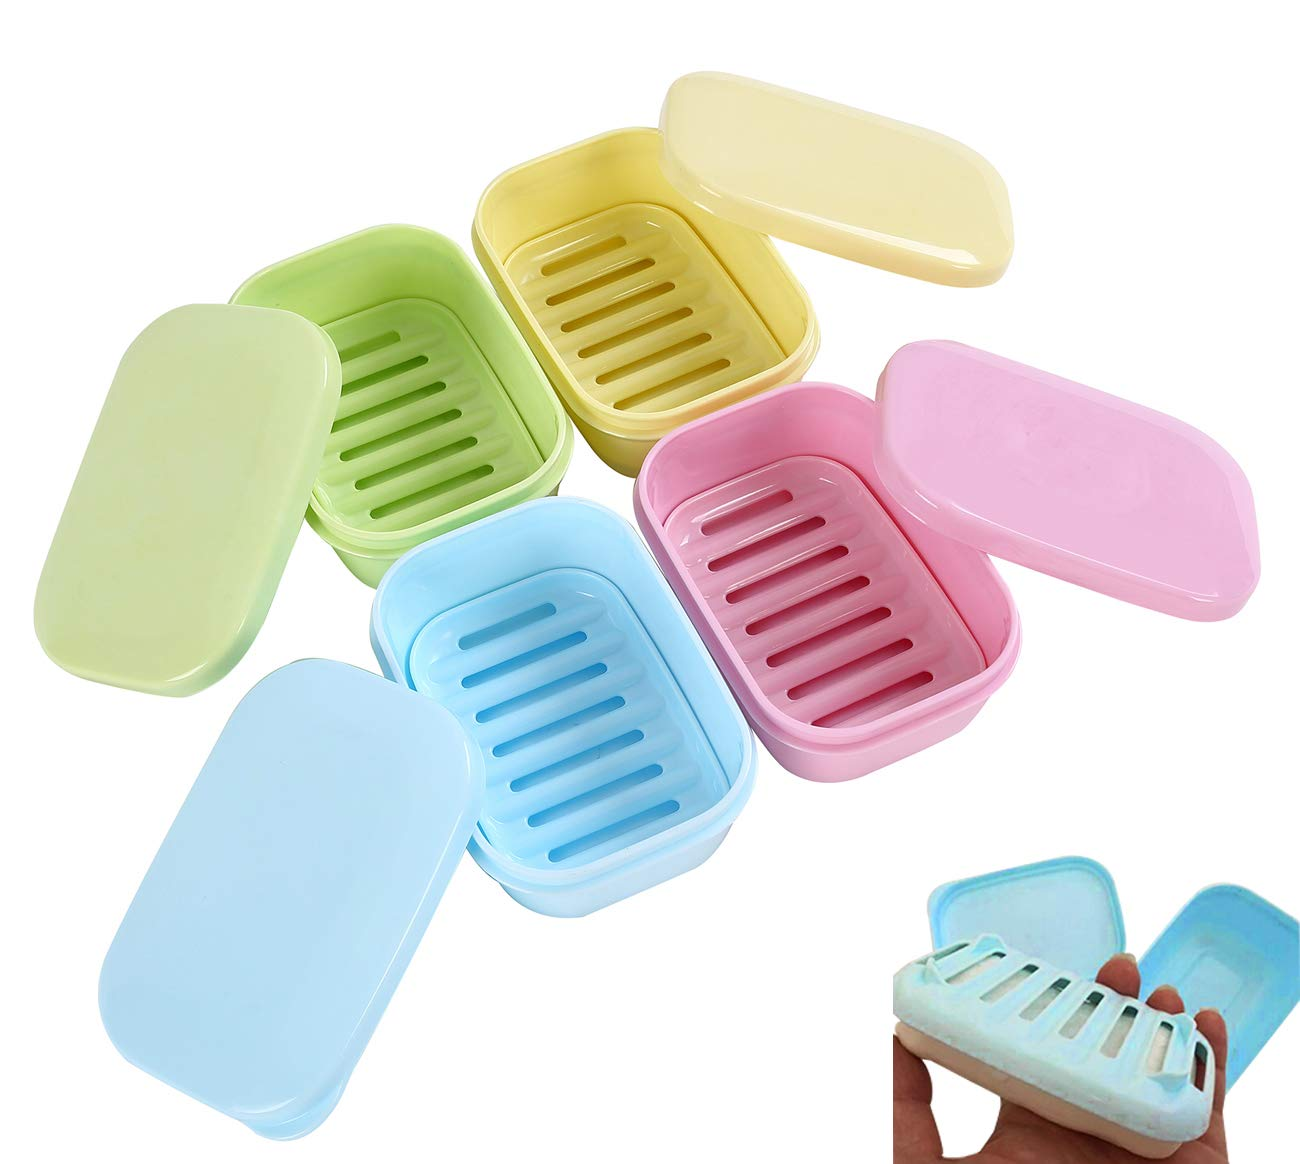 PUTING Removable Soap Drainers Plastic Soap Holder Portable Container Soap Saver Box Case for Bathroom Shower Home Outdoor Camping Set of 4